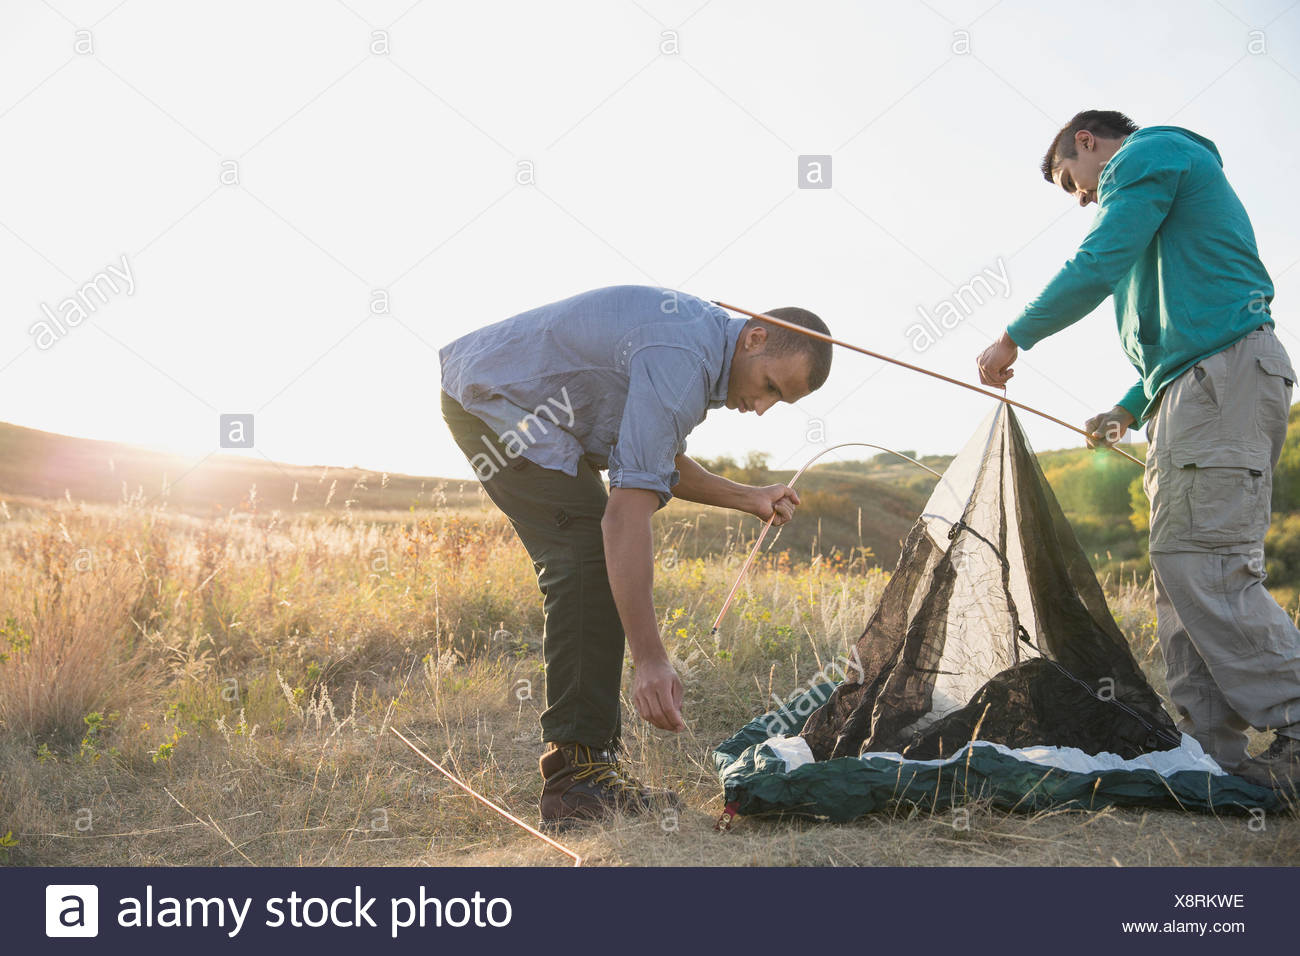 Men inserting tent poles into tent. - Stock Image